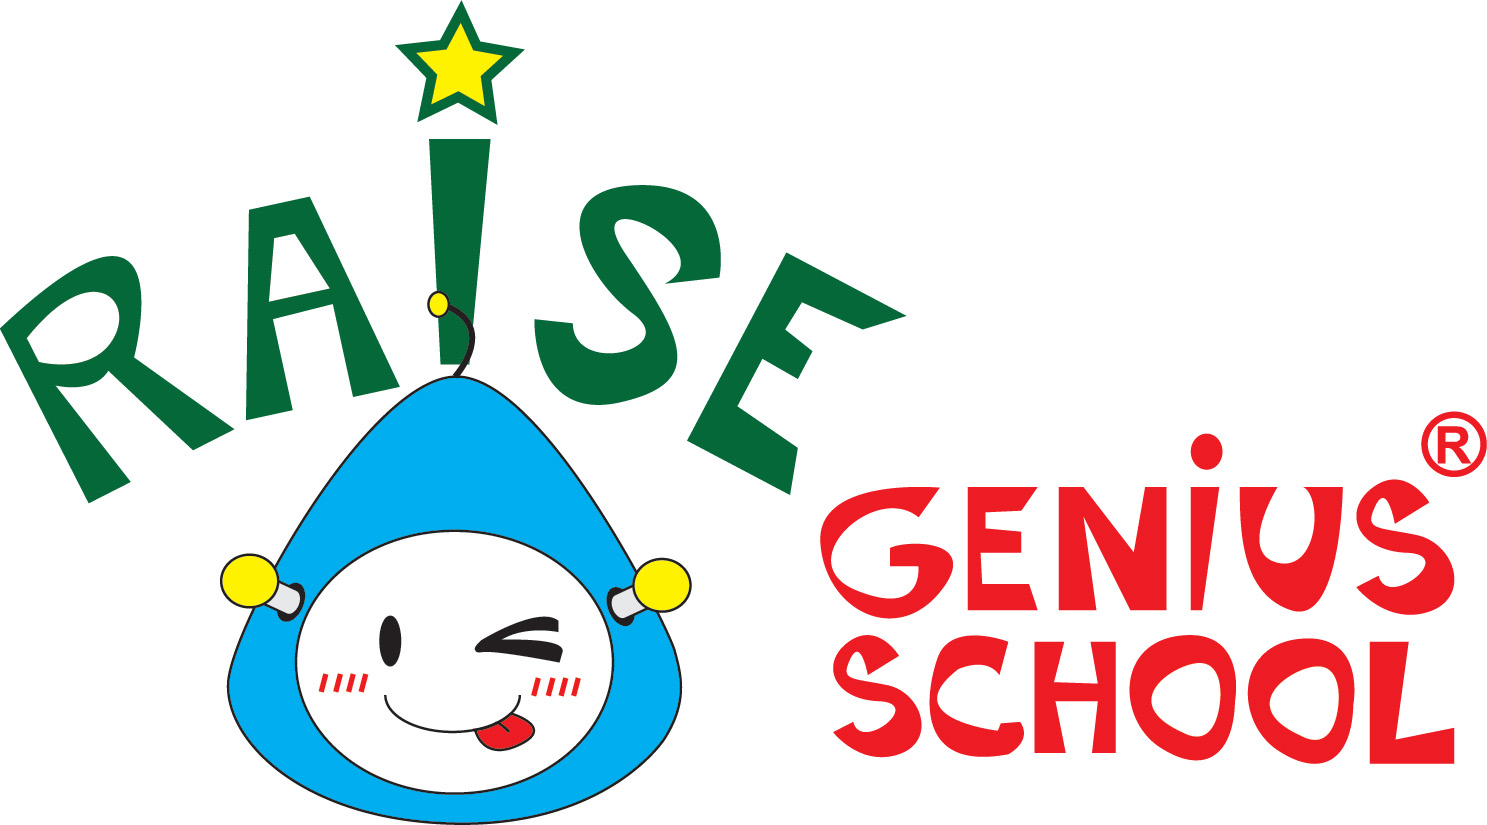 Raise Genius School